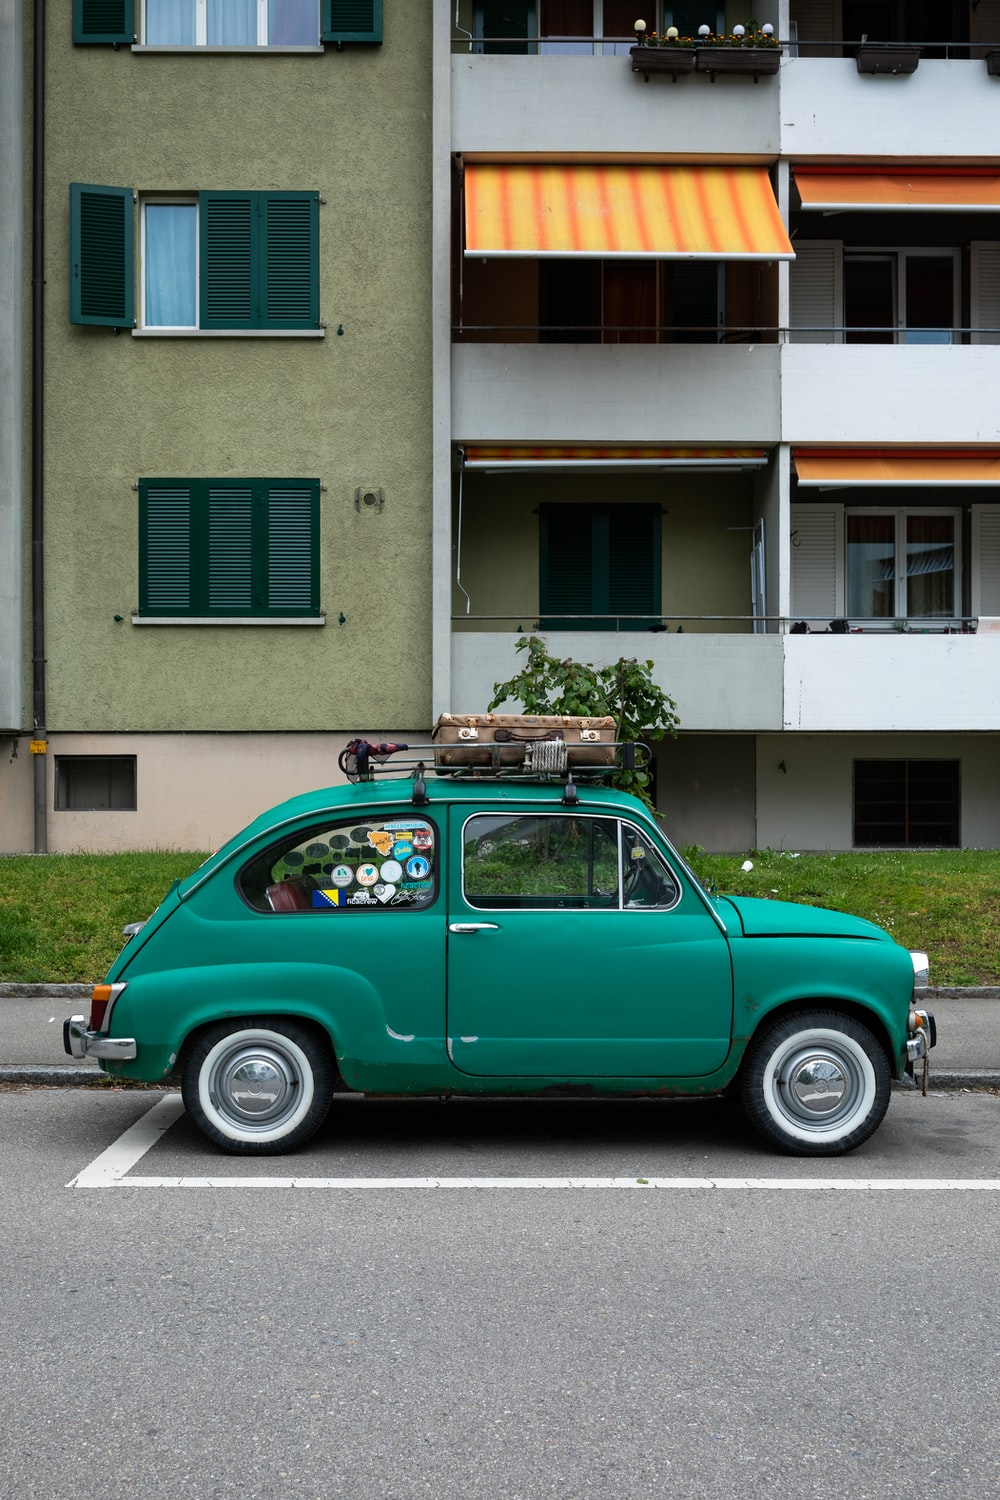 green volkswagen beetle parked beside green and white concrete building during daytime